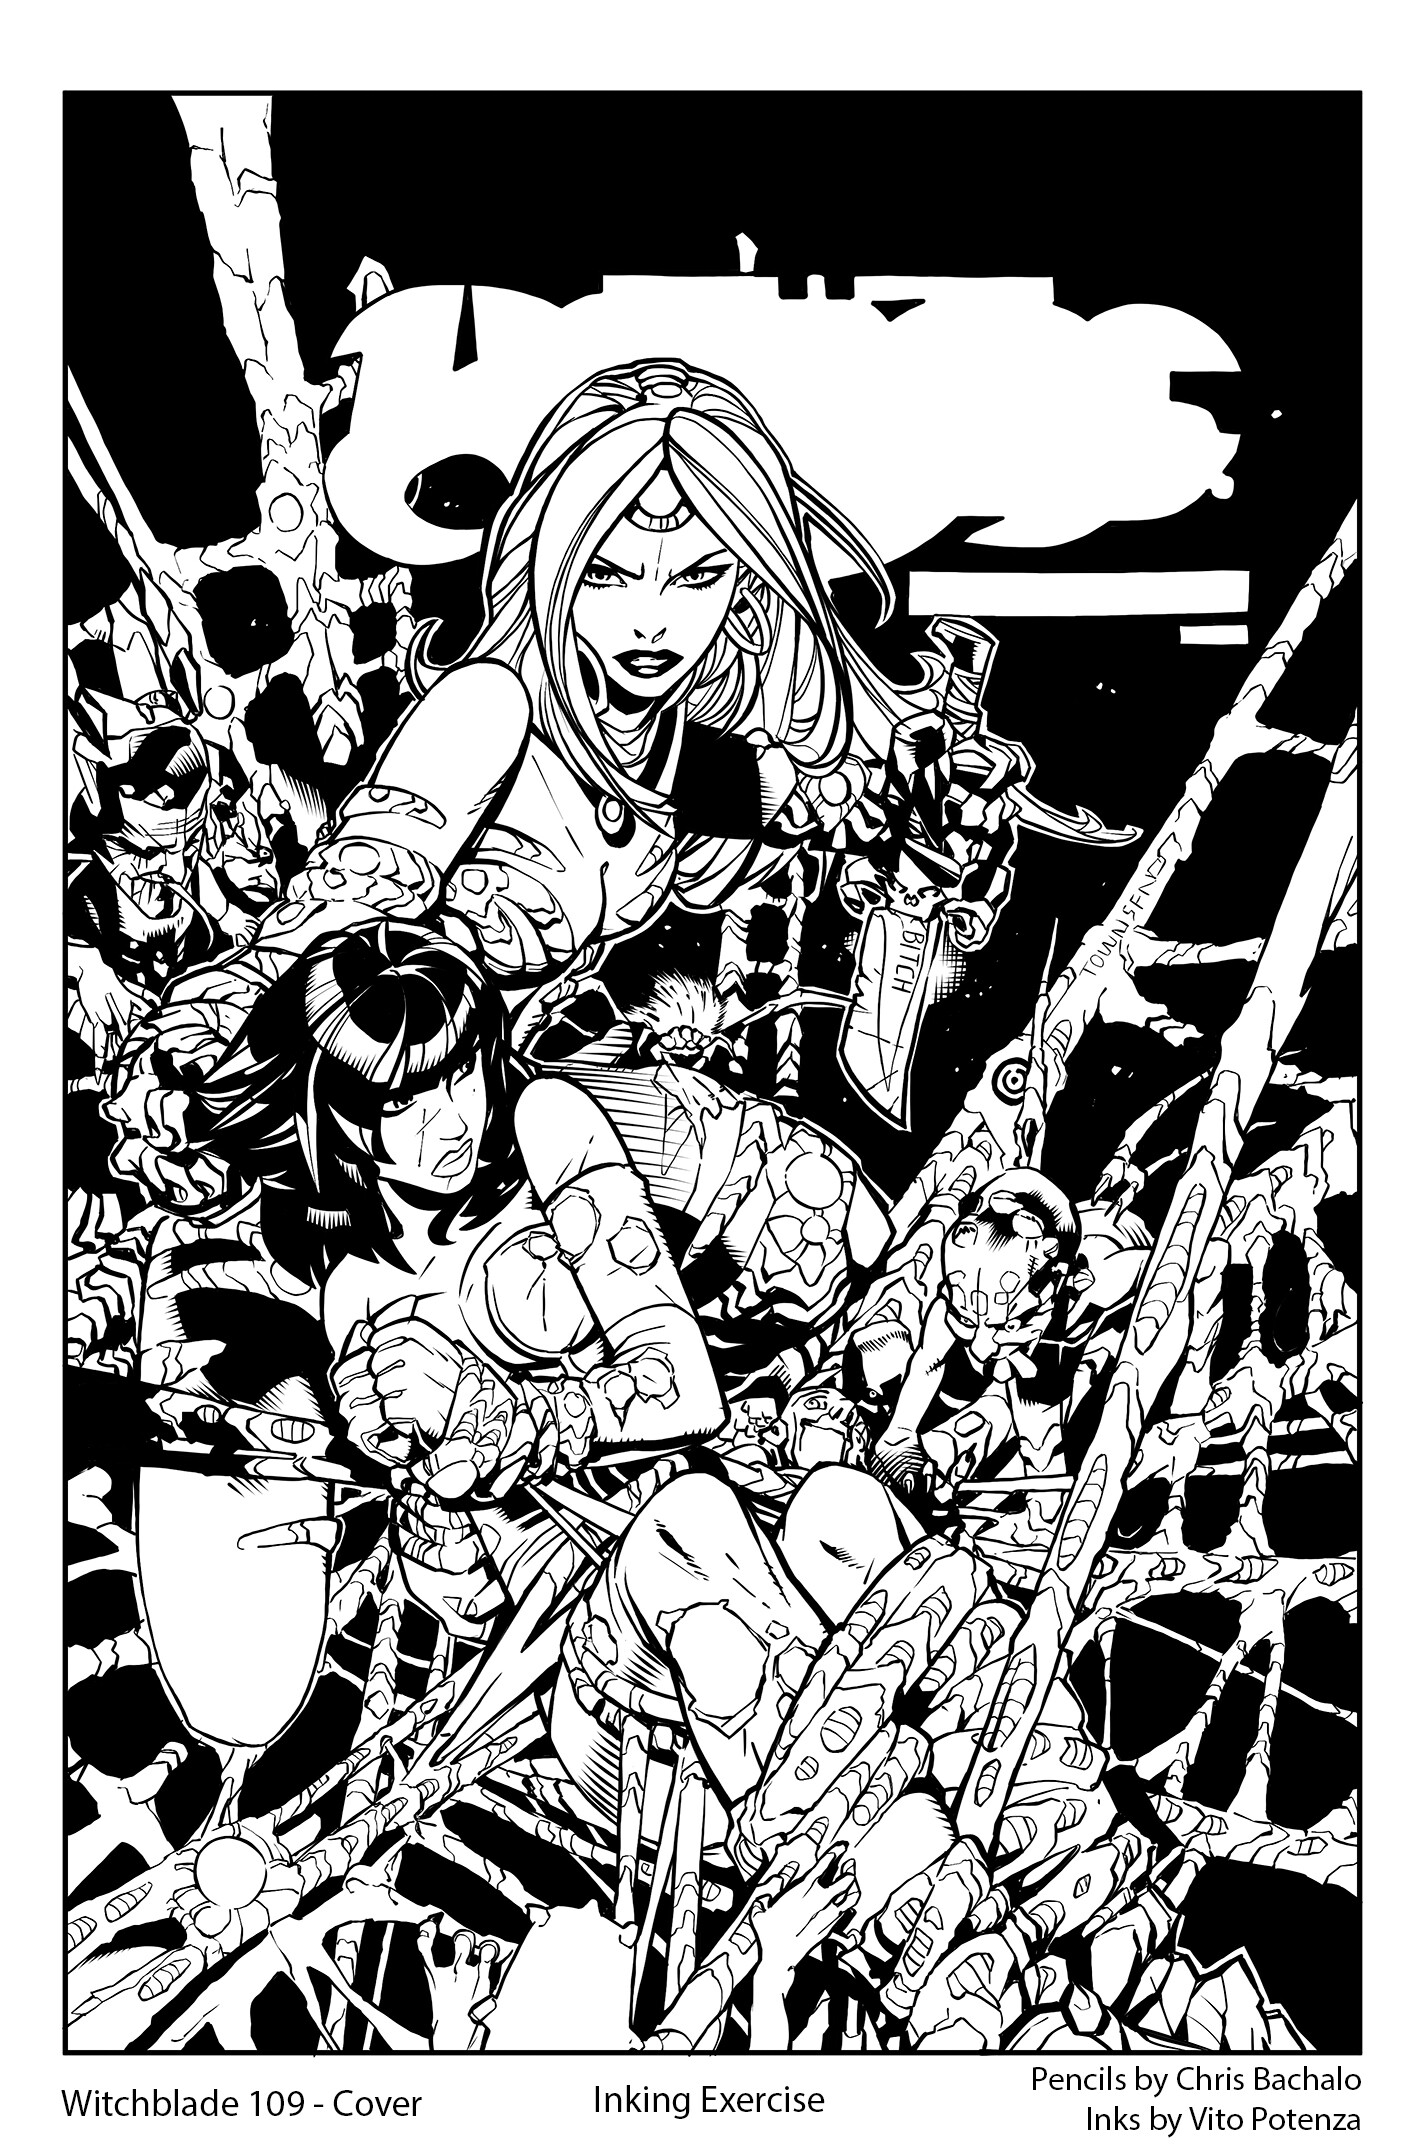 Witchblade #109 - Cover